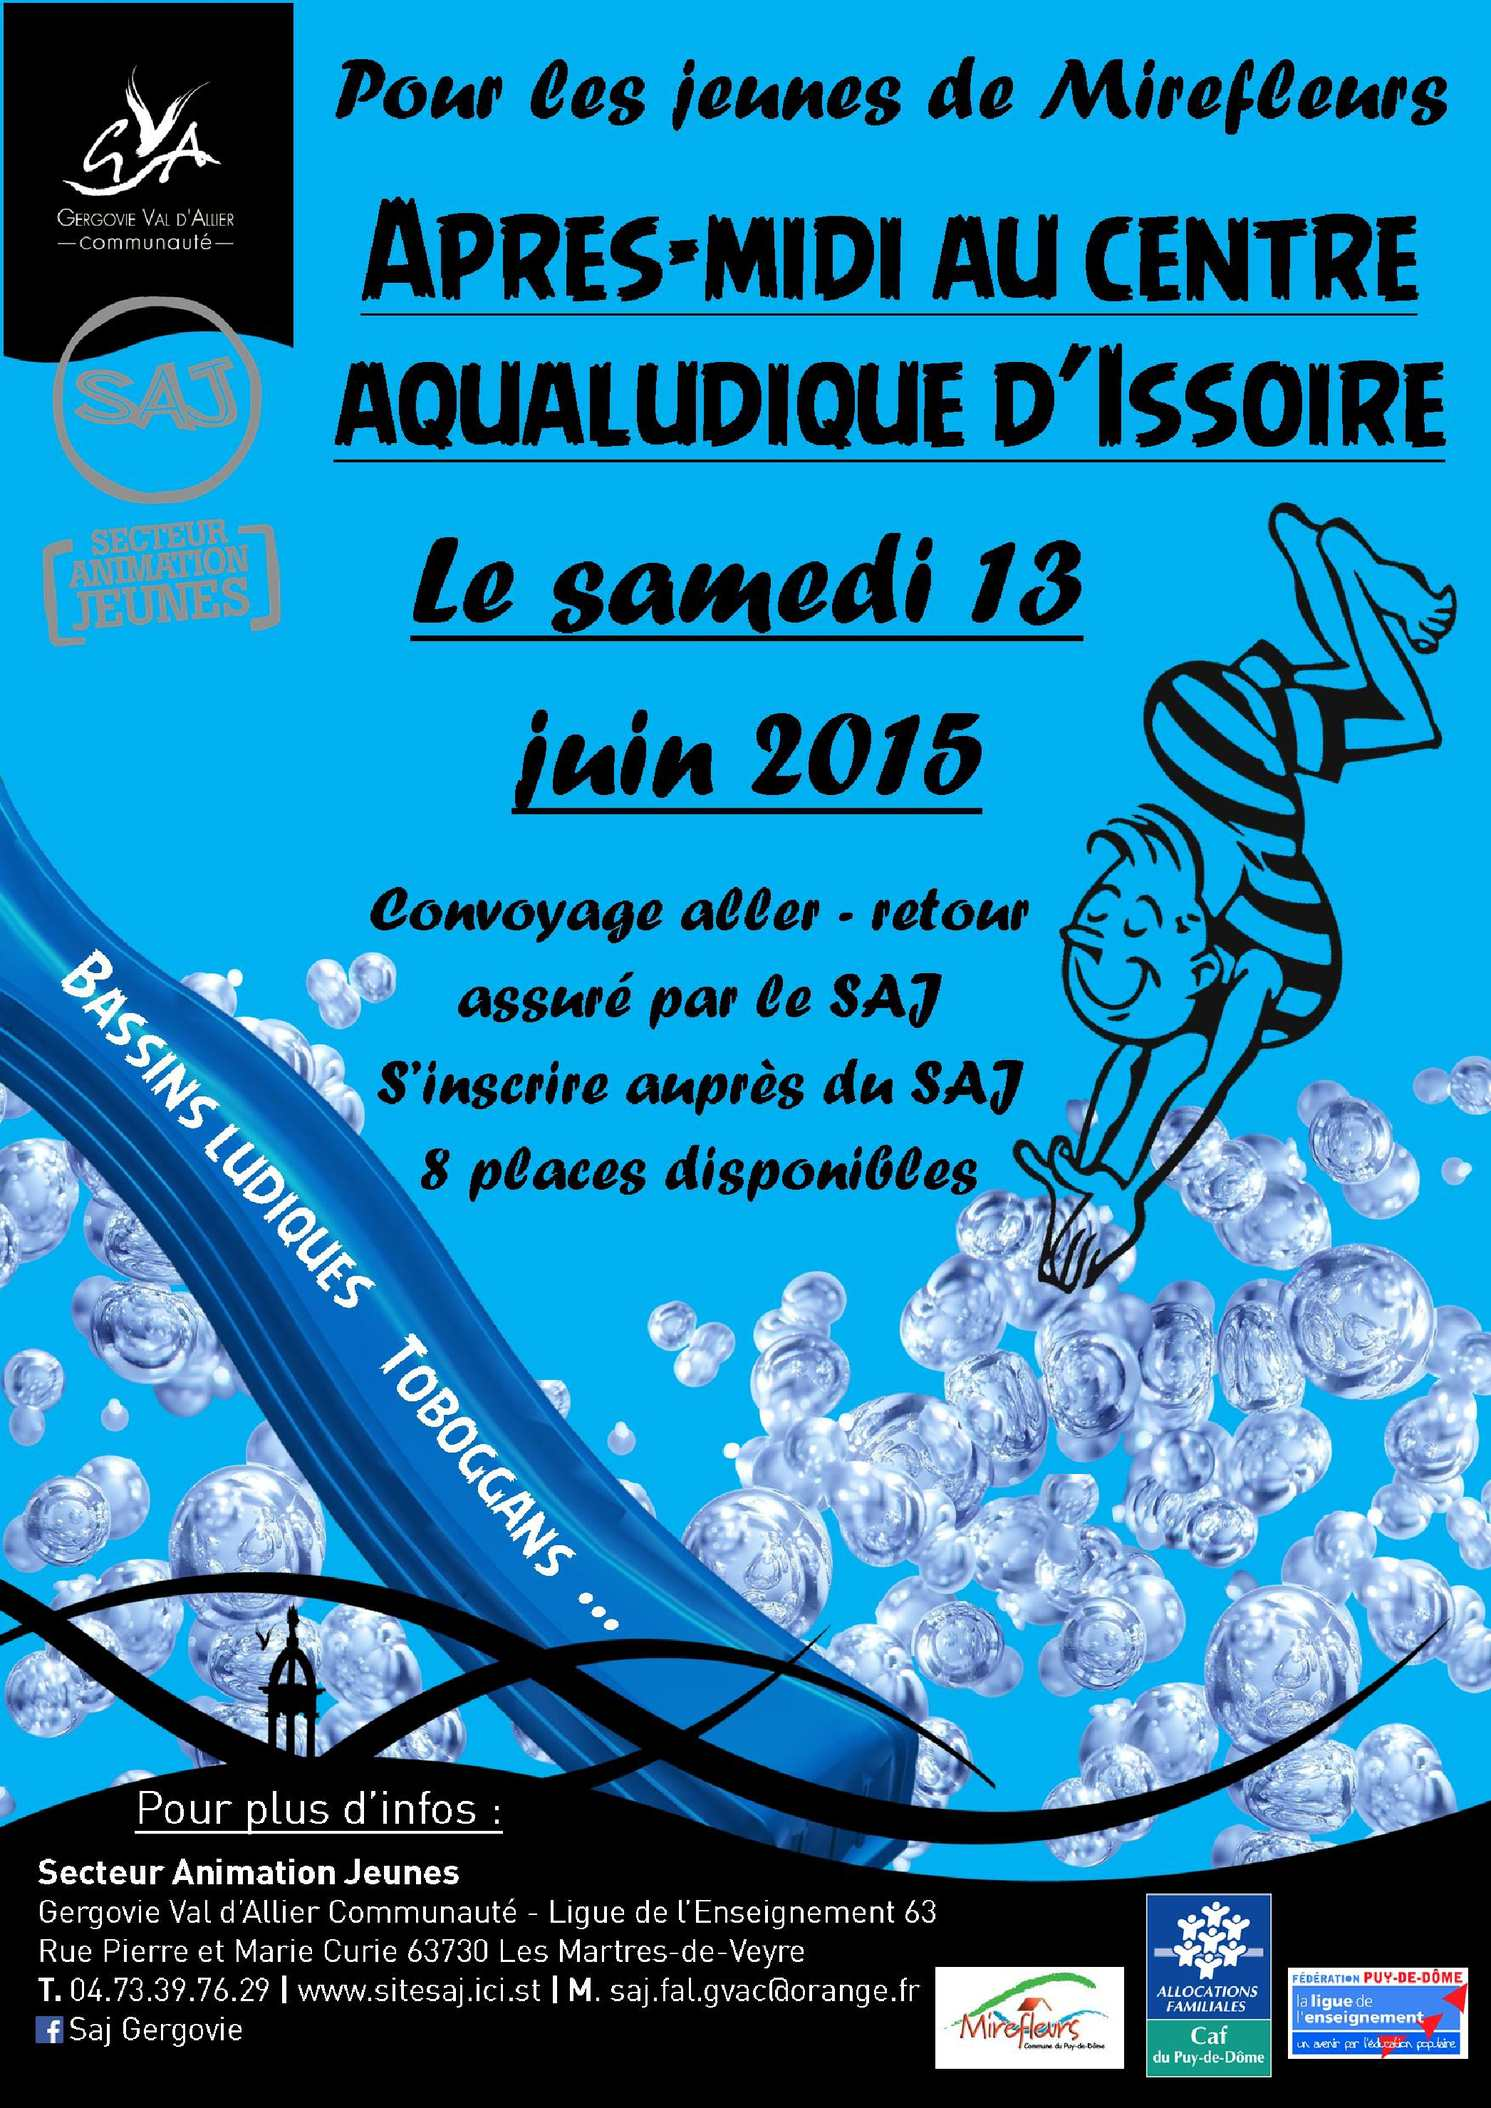 Calam o animation communale piscine issoire mirefleurs for Piscine issoire